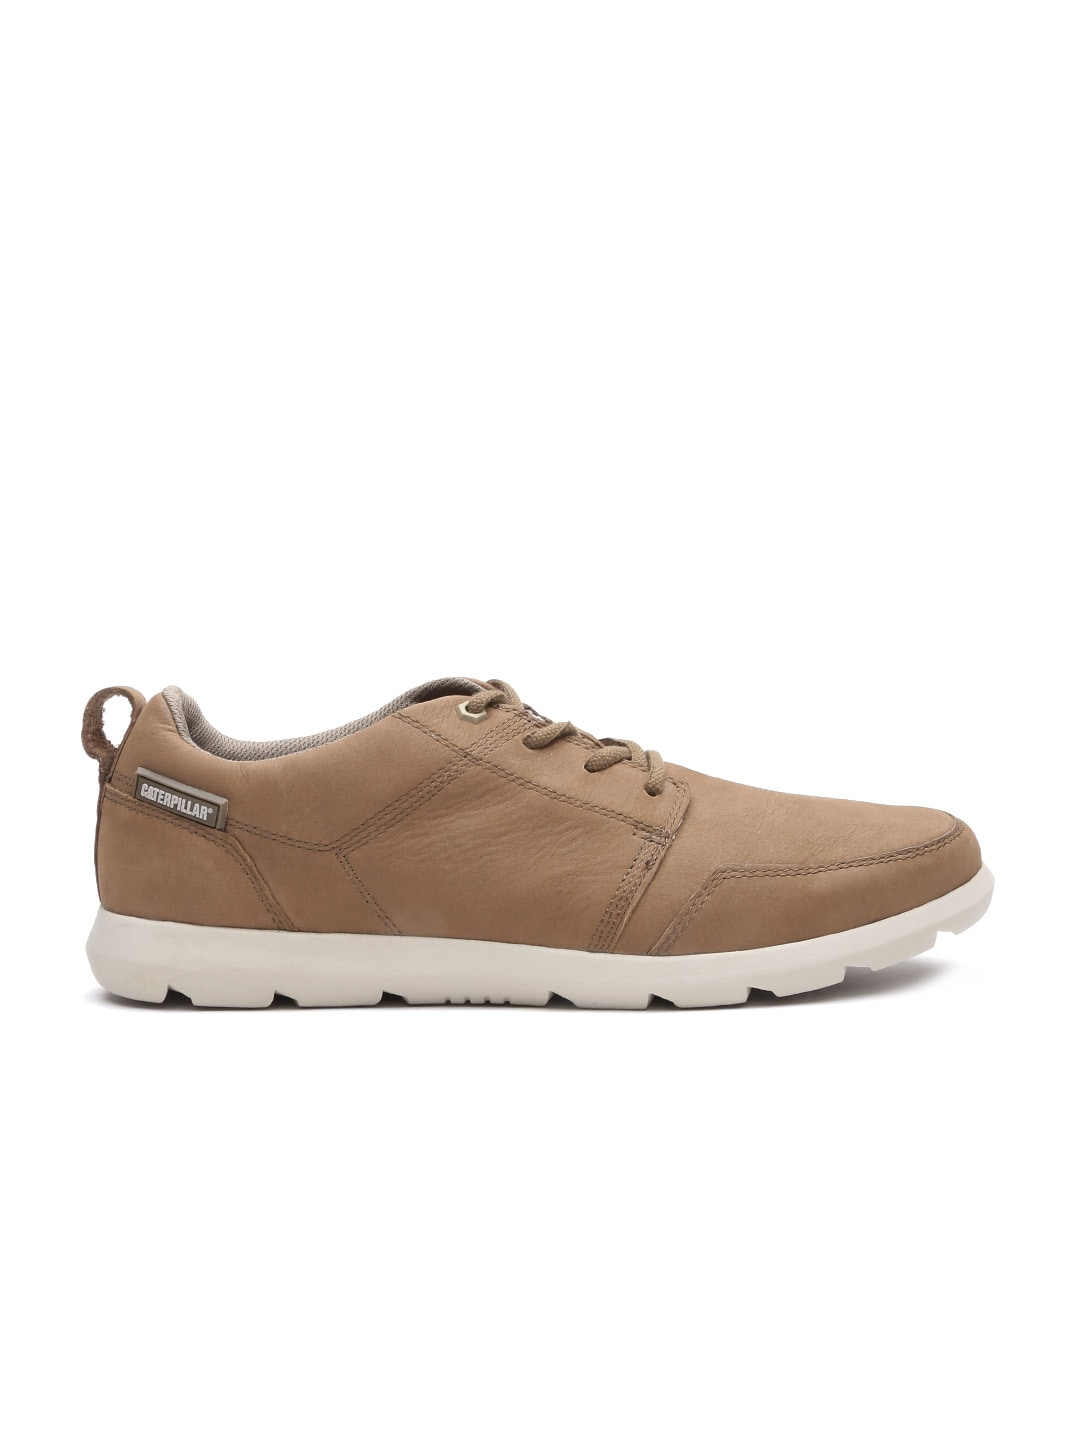 Cat 8544164 Brown Men Brown Breck Leather Casual Shoes